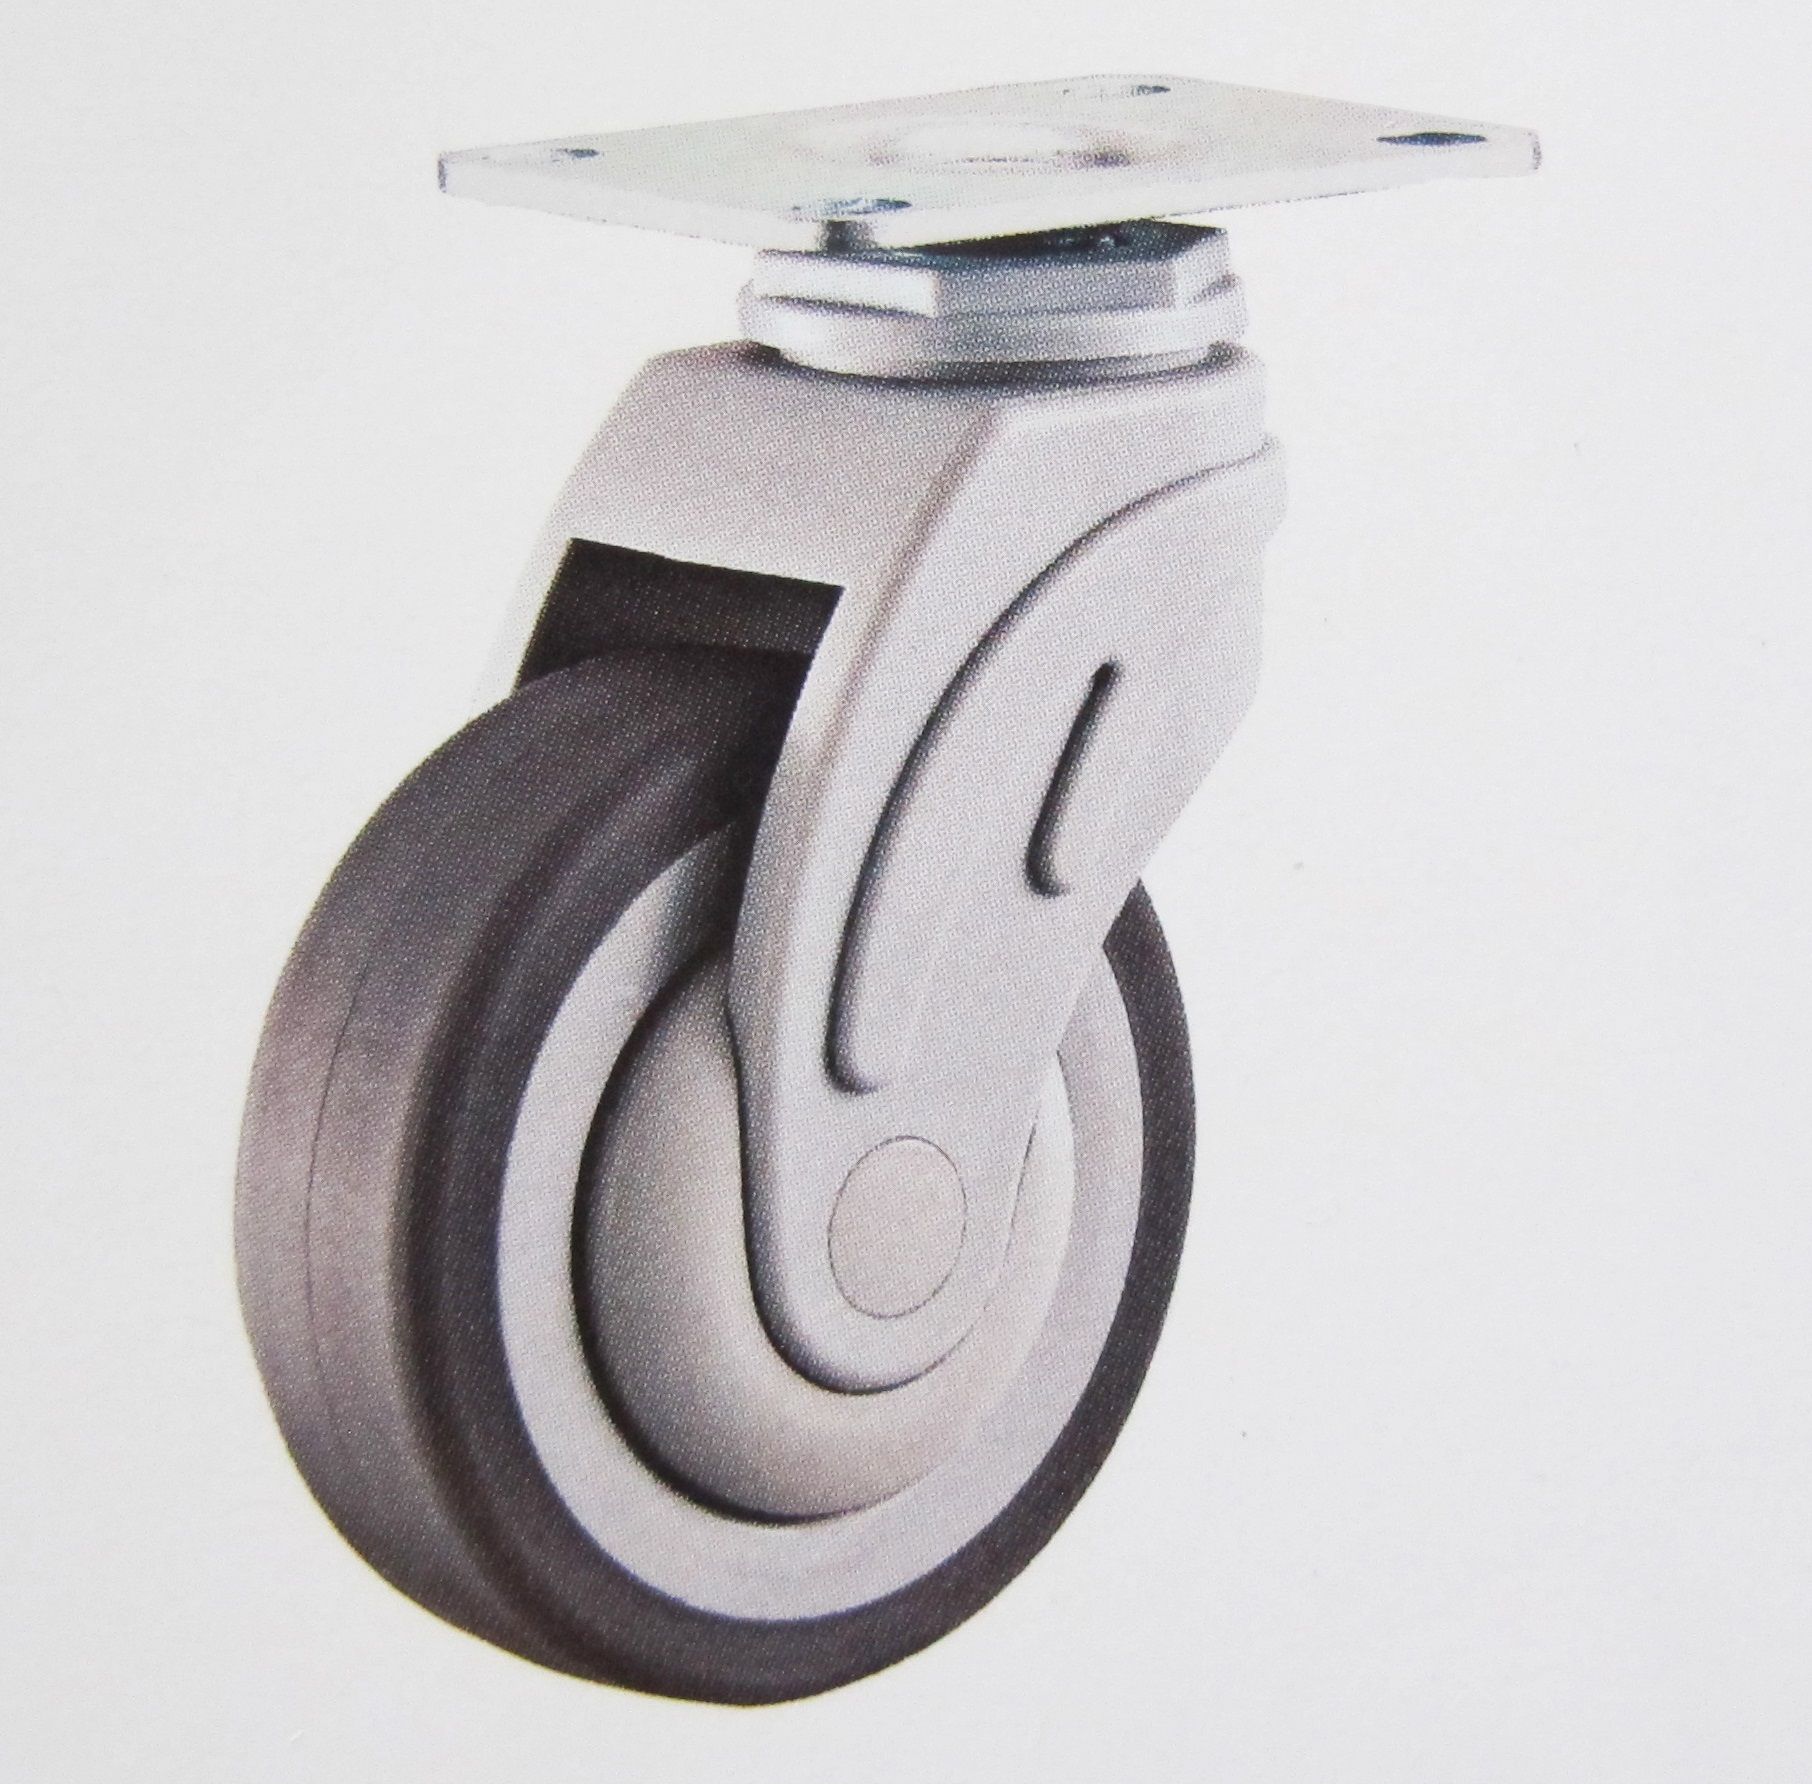 Plastic medical caster wheel swivel plate(flat rim)